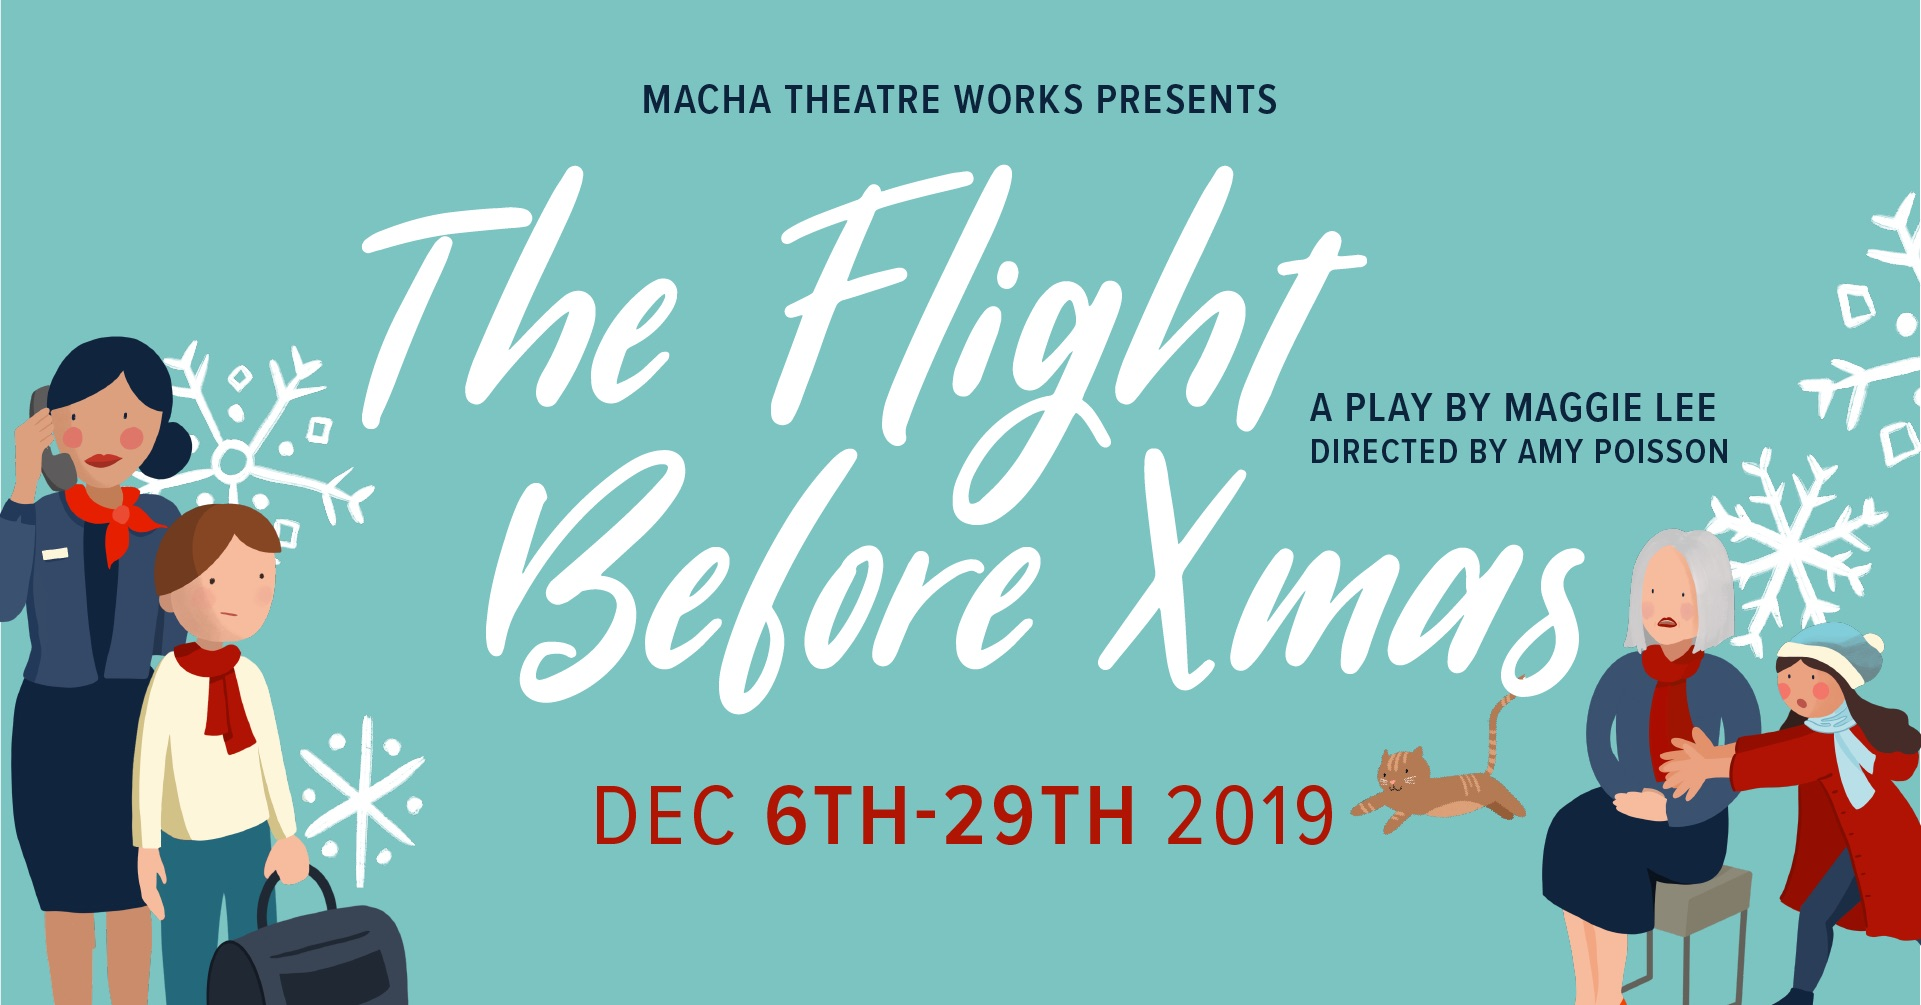 The Flight Before Xmas a play by Maggie Lee